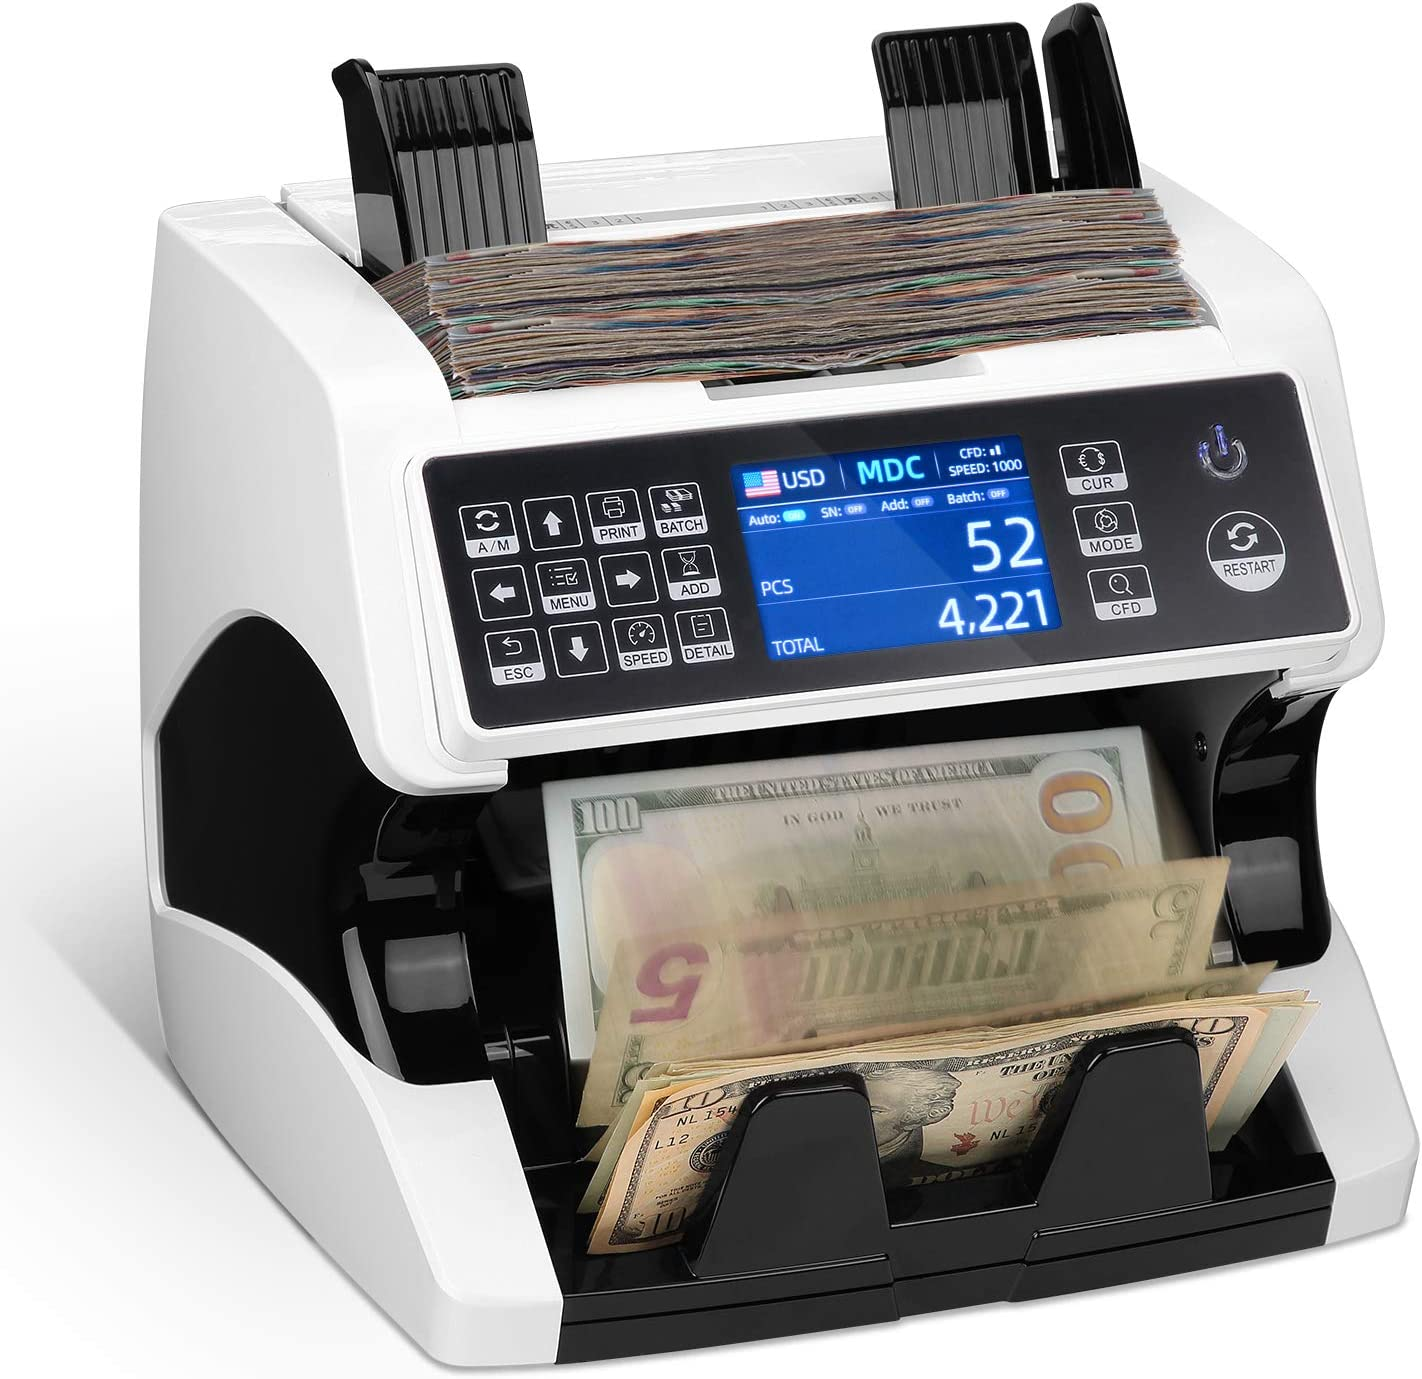 MUNBYN Bill Counter Mixed Denomination, UV/MG/IR/2 CIS Counterfeit Detection Currency Counting Machine with Serial Number Recognition, Cash Counter, Money Detector for Small Business Bank